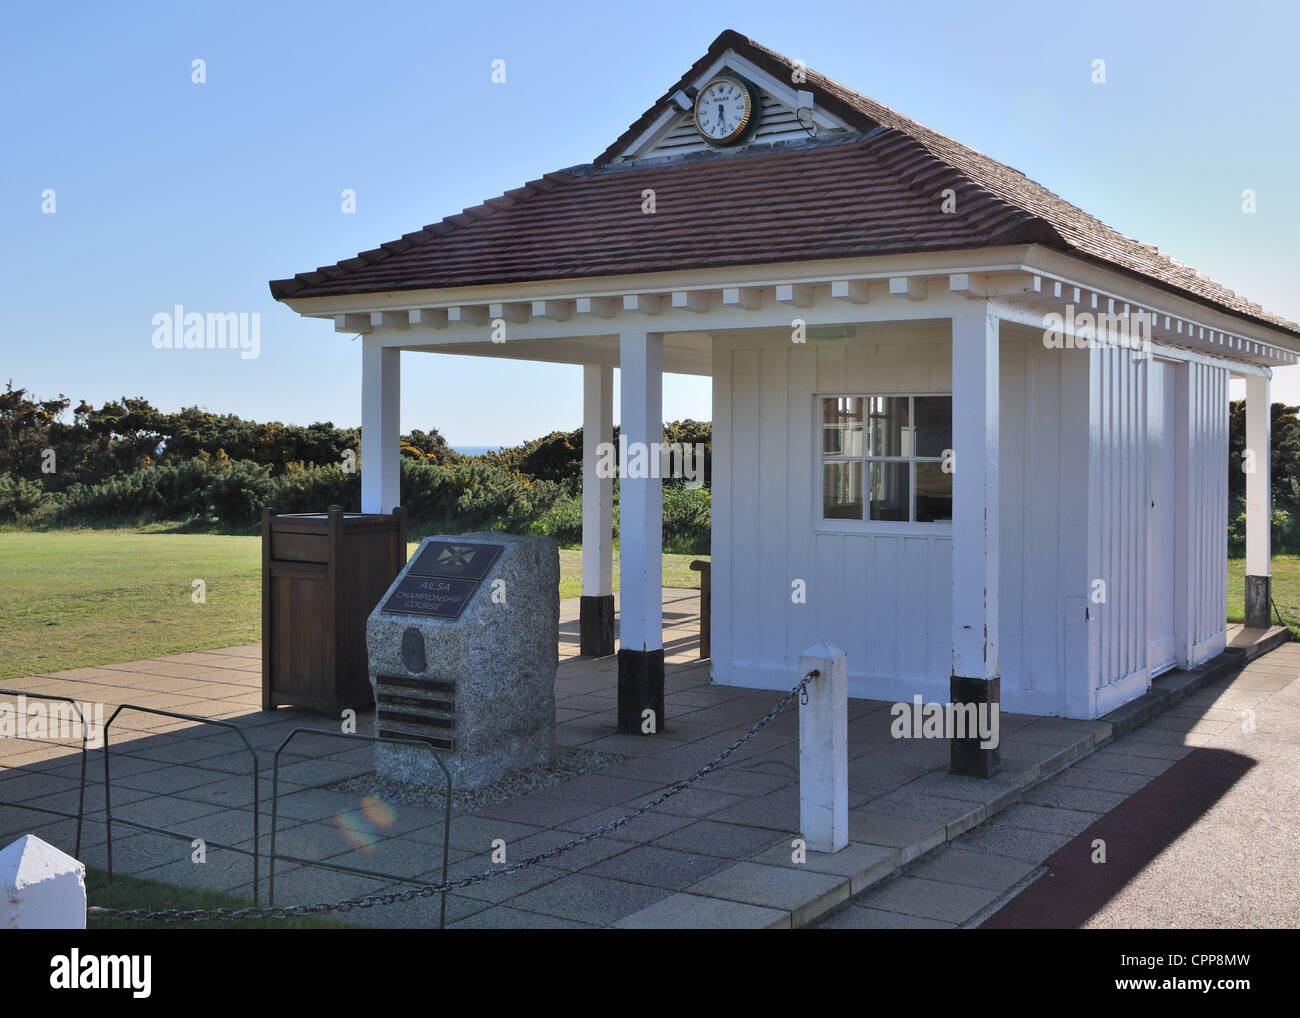 1st tee and starters office/hut at the Ailsa golf course, Turnberry Scotland. - Stock Image